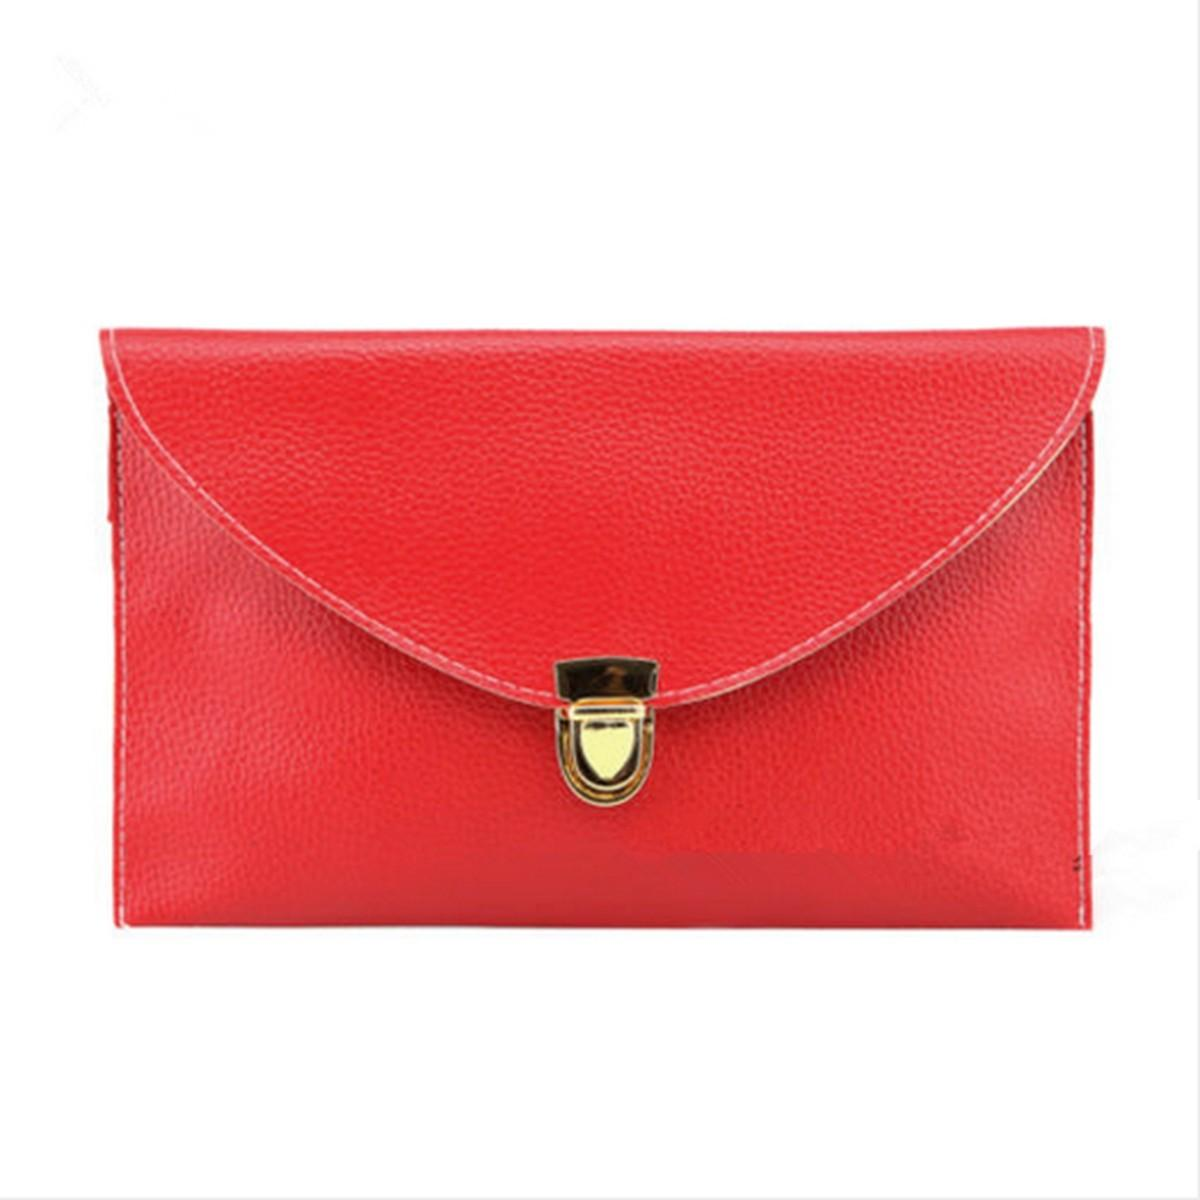 Women Fashion Evening Hand Bag Envelope Clutch Shoulder